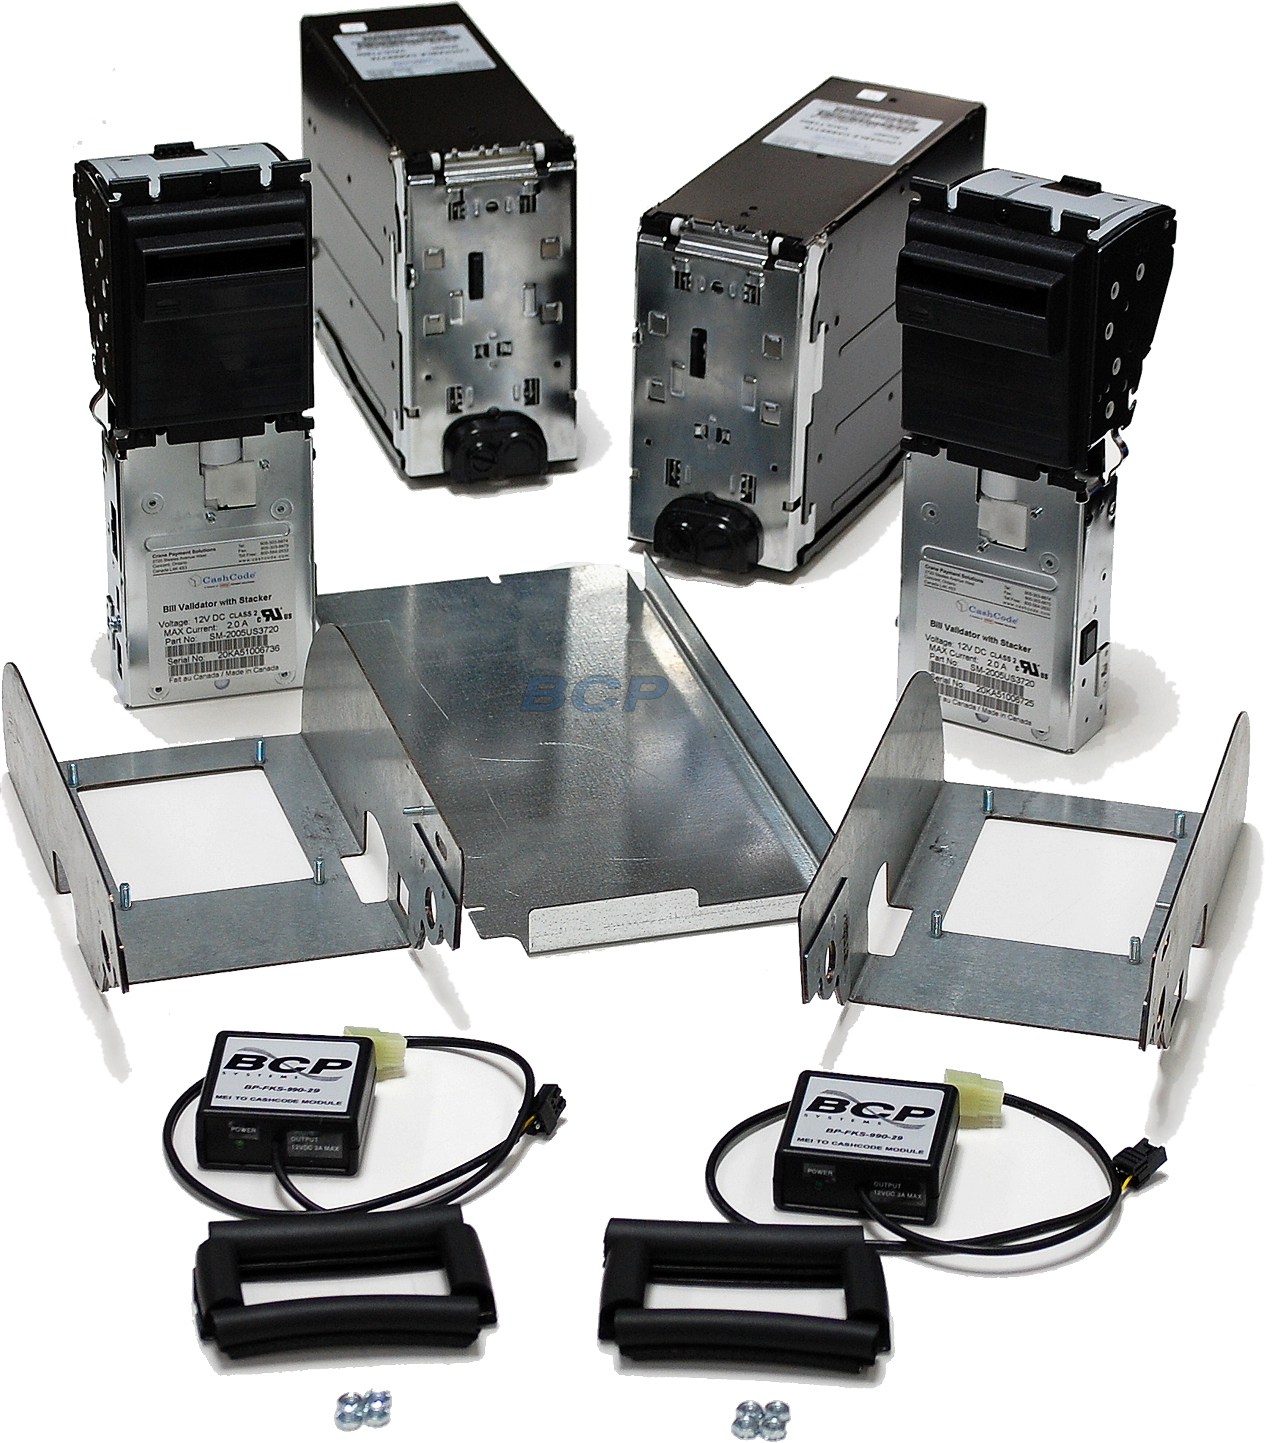 CONVERSION KIT FIREKING NKL V2 SAFES MARS TO CASHCODE DUAL BILL ACCEPTORS CASH CASSETTES (without locks) WITH MEI TO CASHCODE MODULES BRACKETS AND GASKETS FOR SAFES WITHOUT ACCESS TO THE BACK ALL WORK DONE IN FRONT. - NEW (BP-FKS-